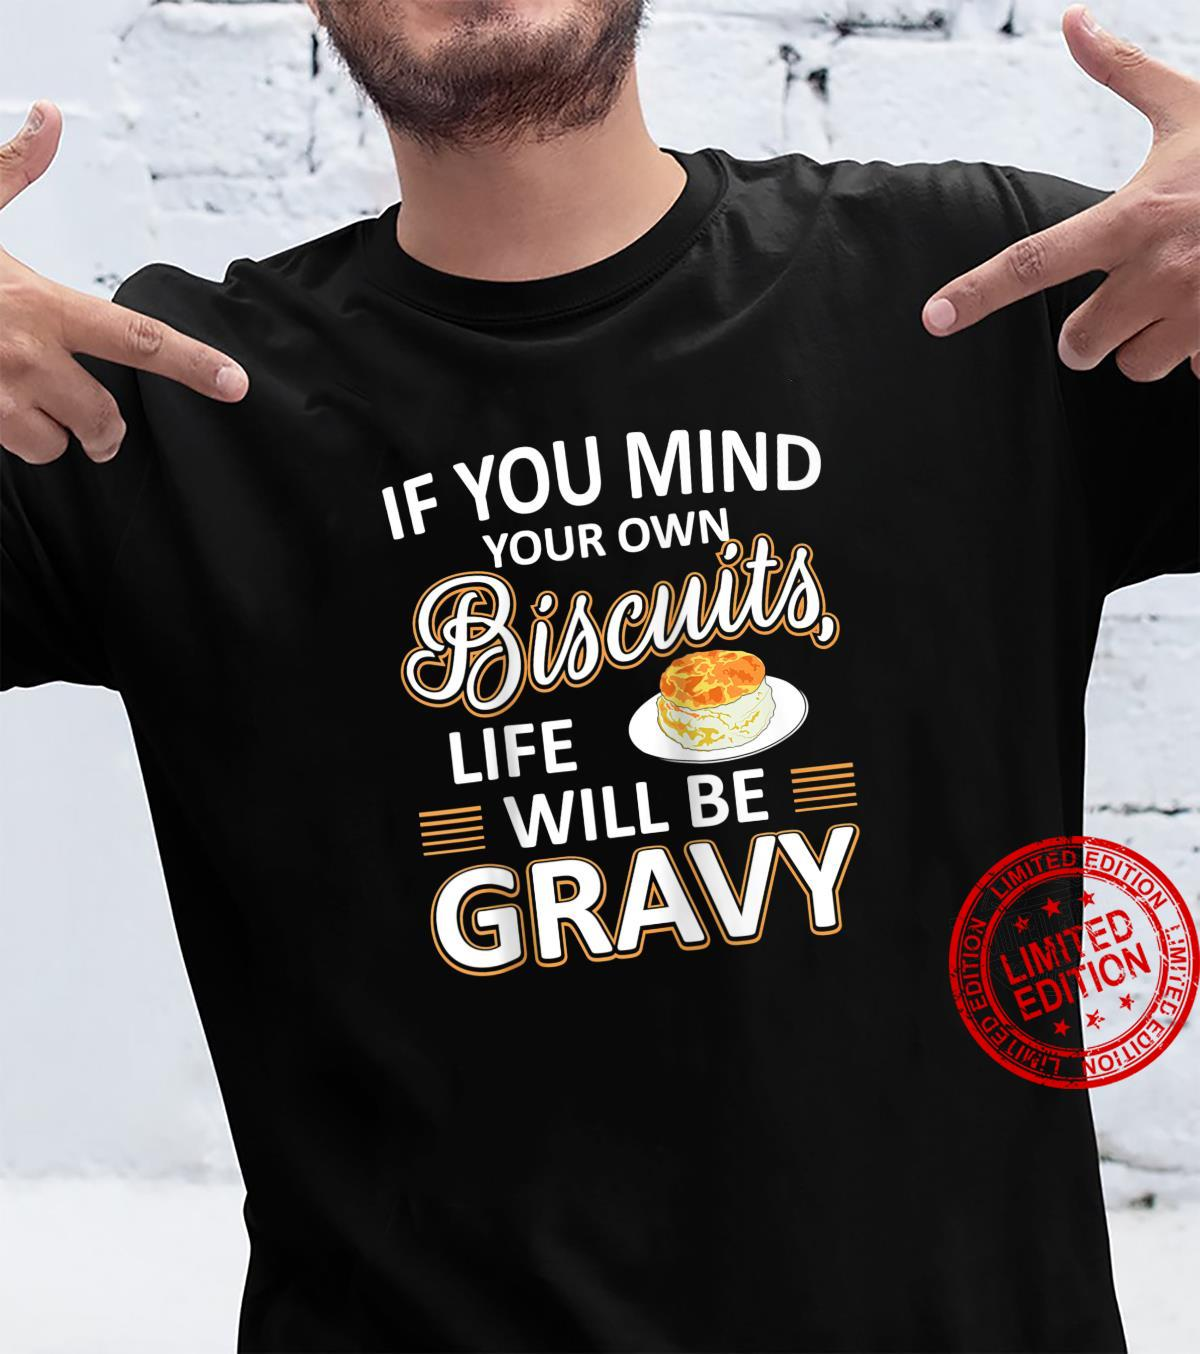 Mind Your Own Biscuits And Life Will Be Gravy Shirt